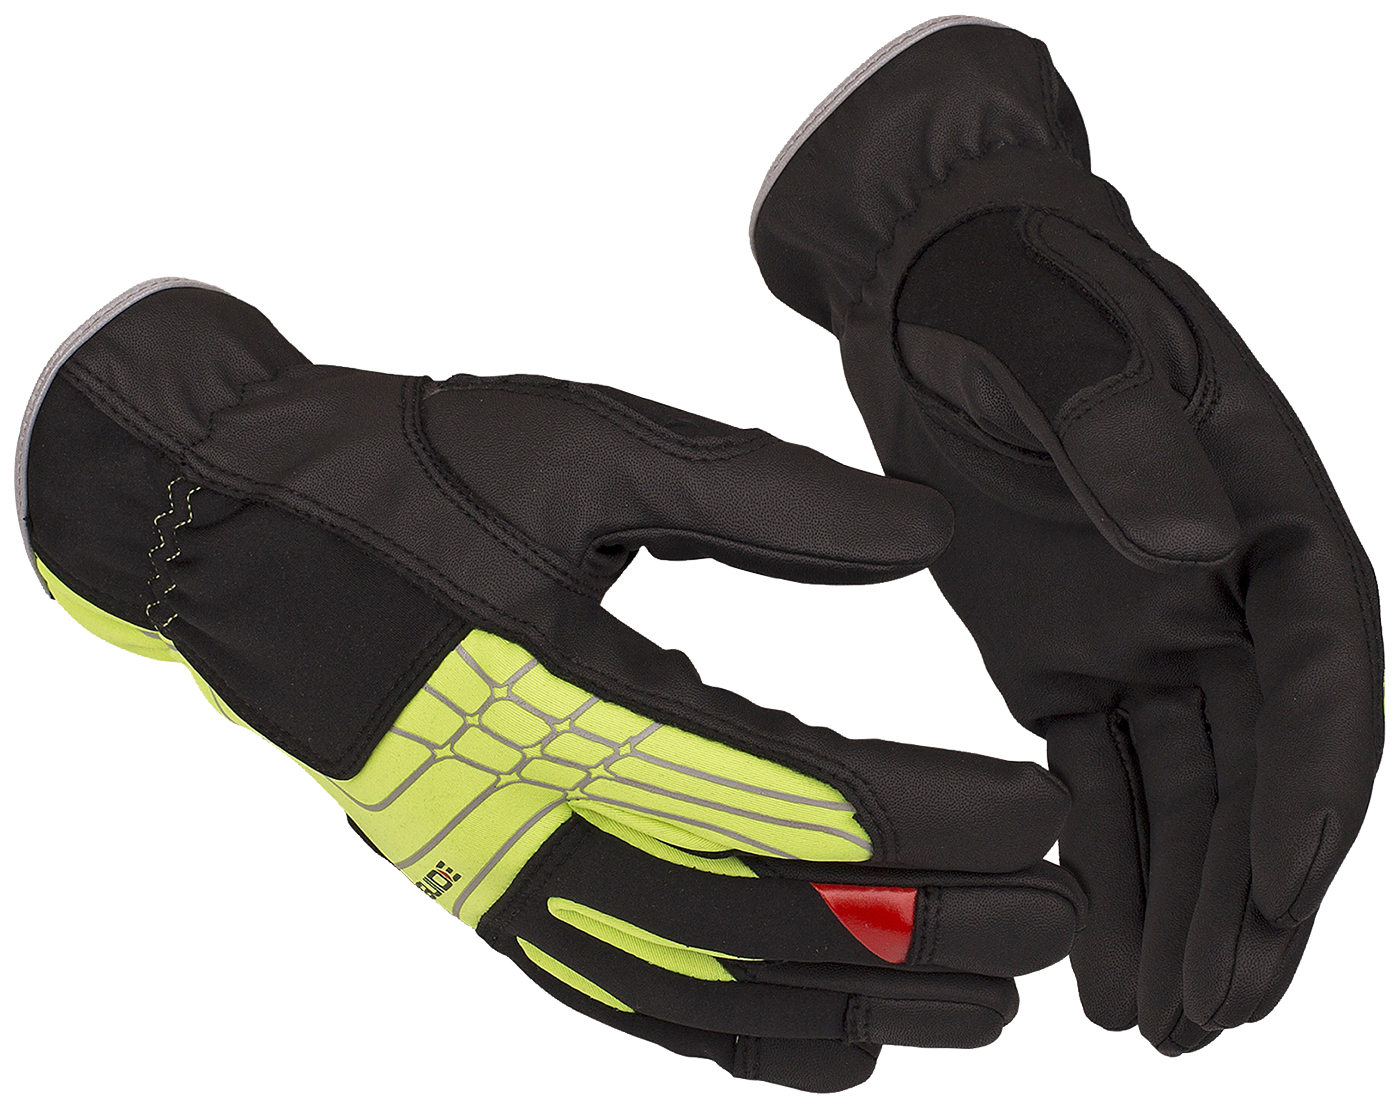 Working Glove GUIDE 5002